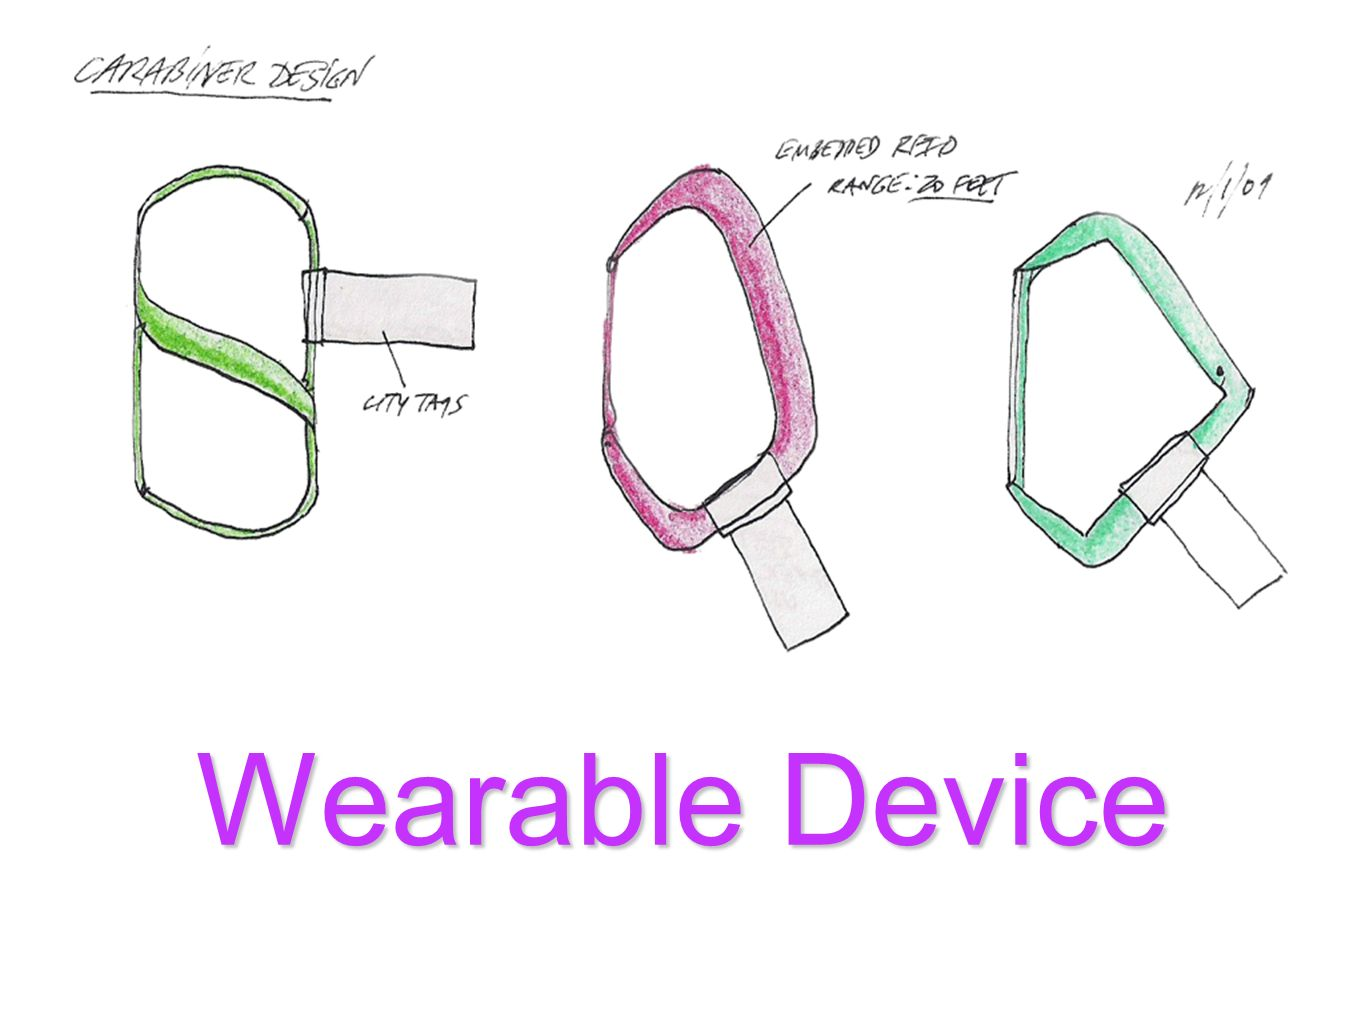 Wearable Device